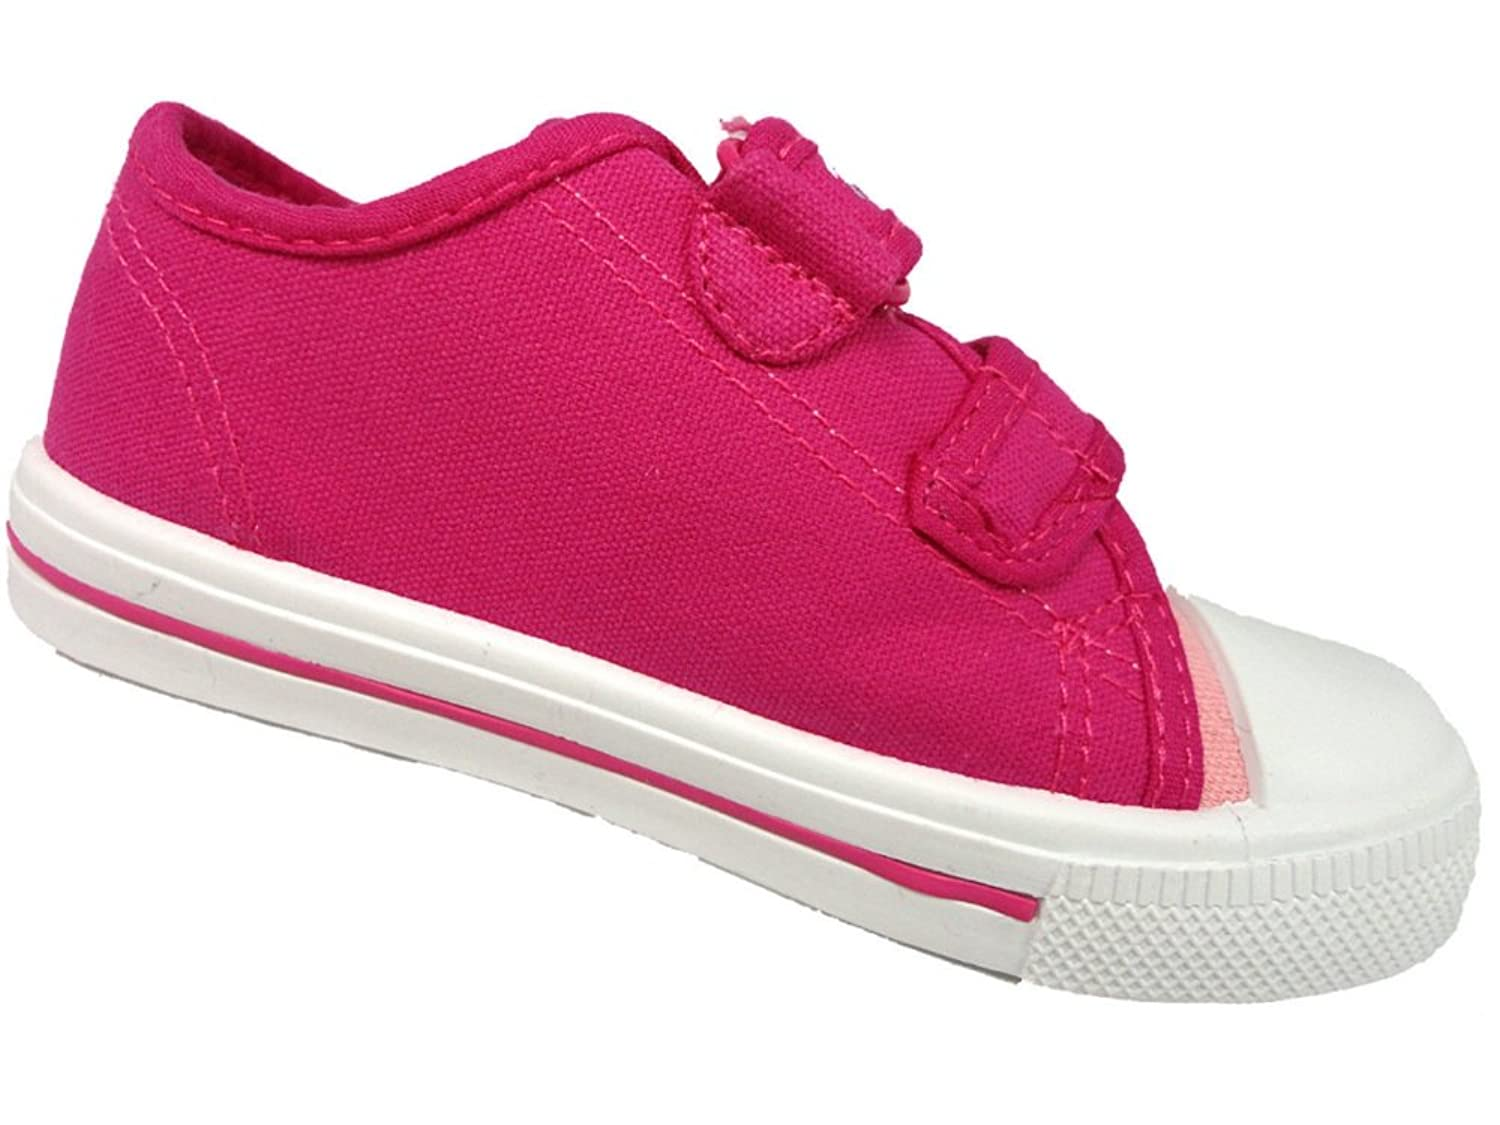 Girls Paw Patrol Pink Canvas Pump Infant Trainers Shoes Pup Power:  Amazon.co.uk: Shoes & Bags